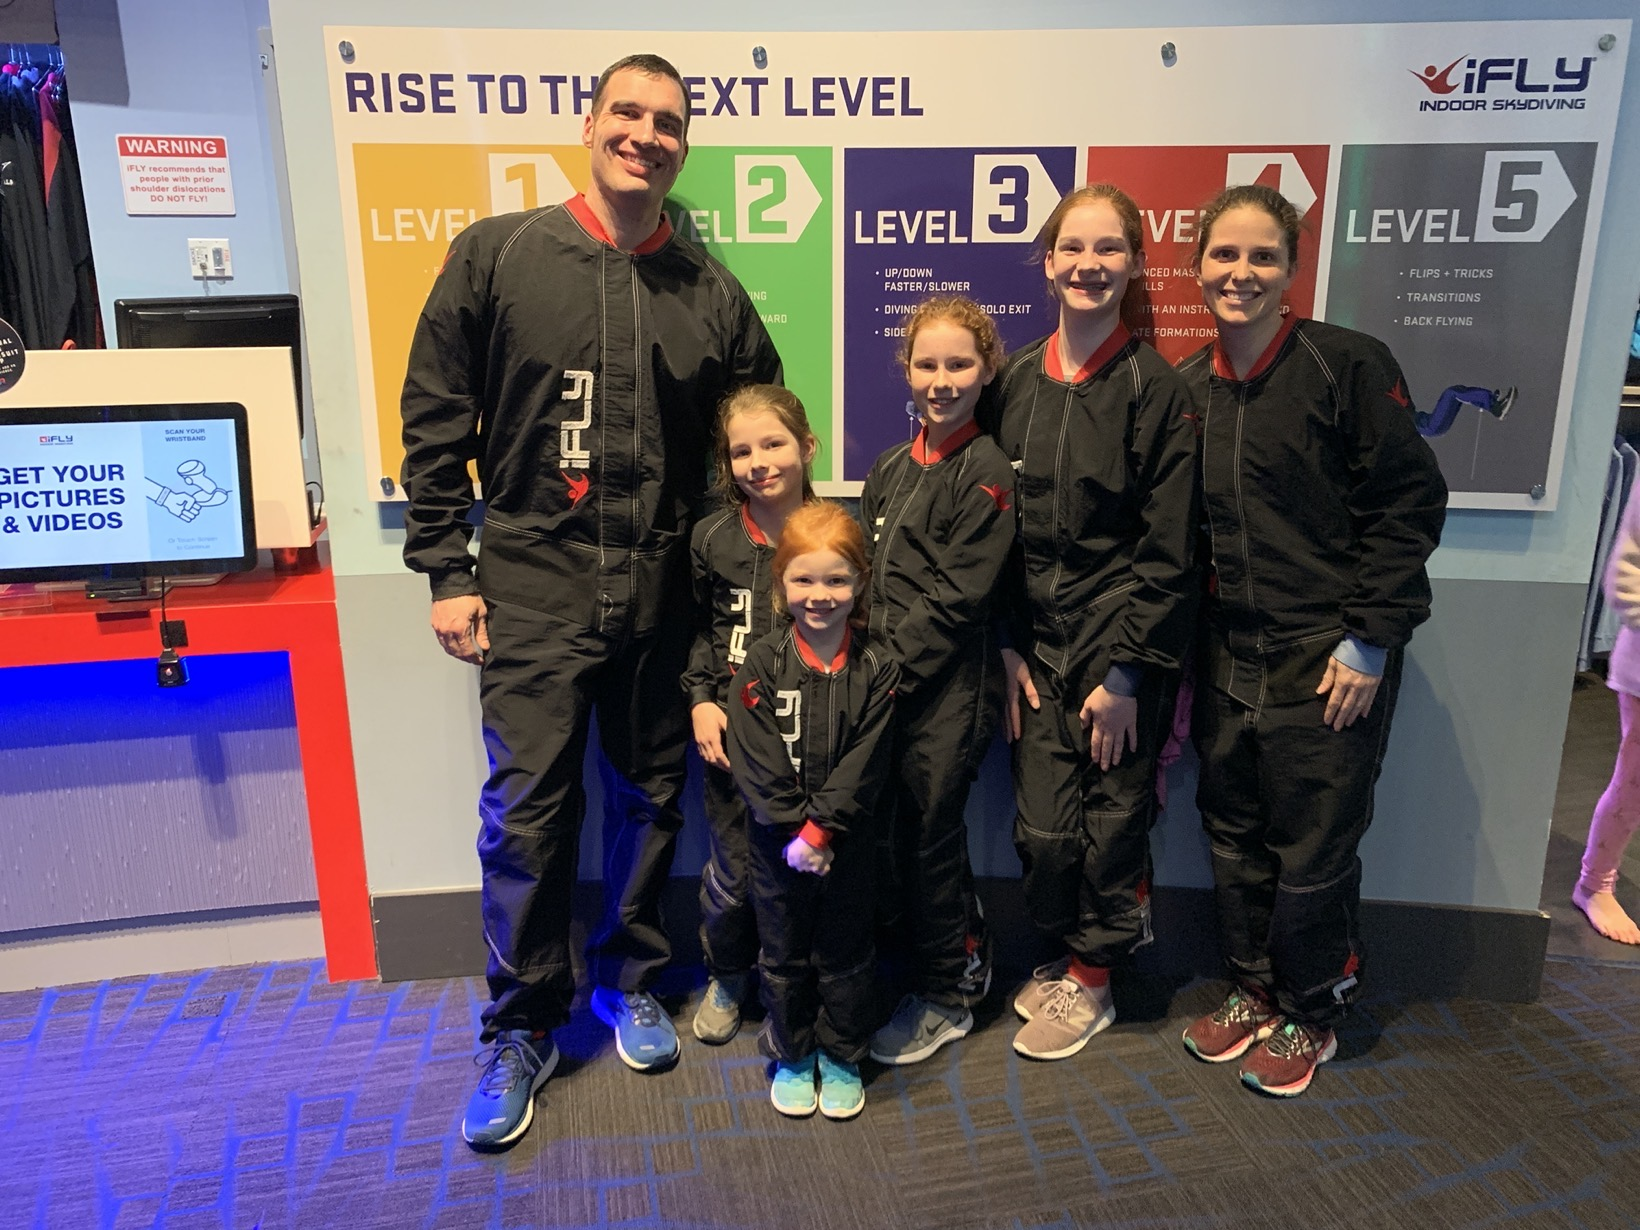 all suited up for ifly